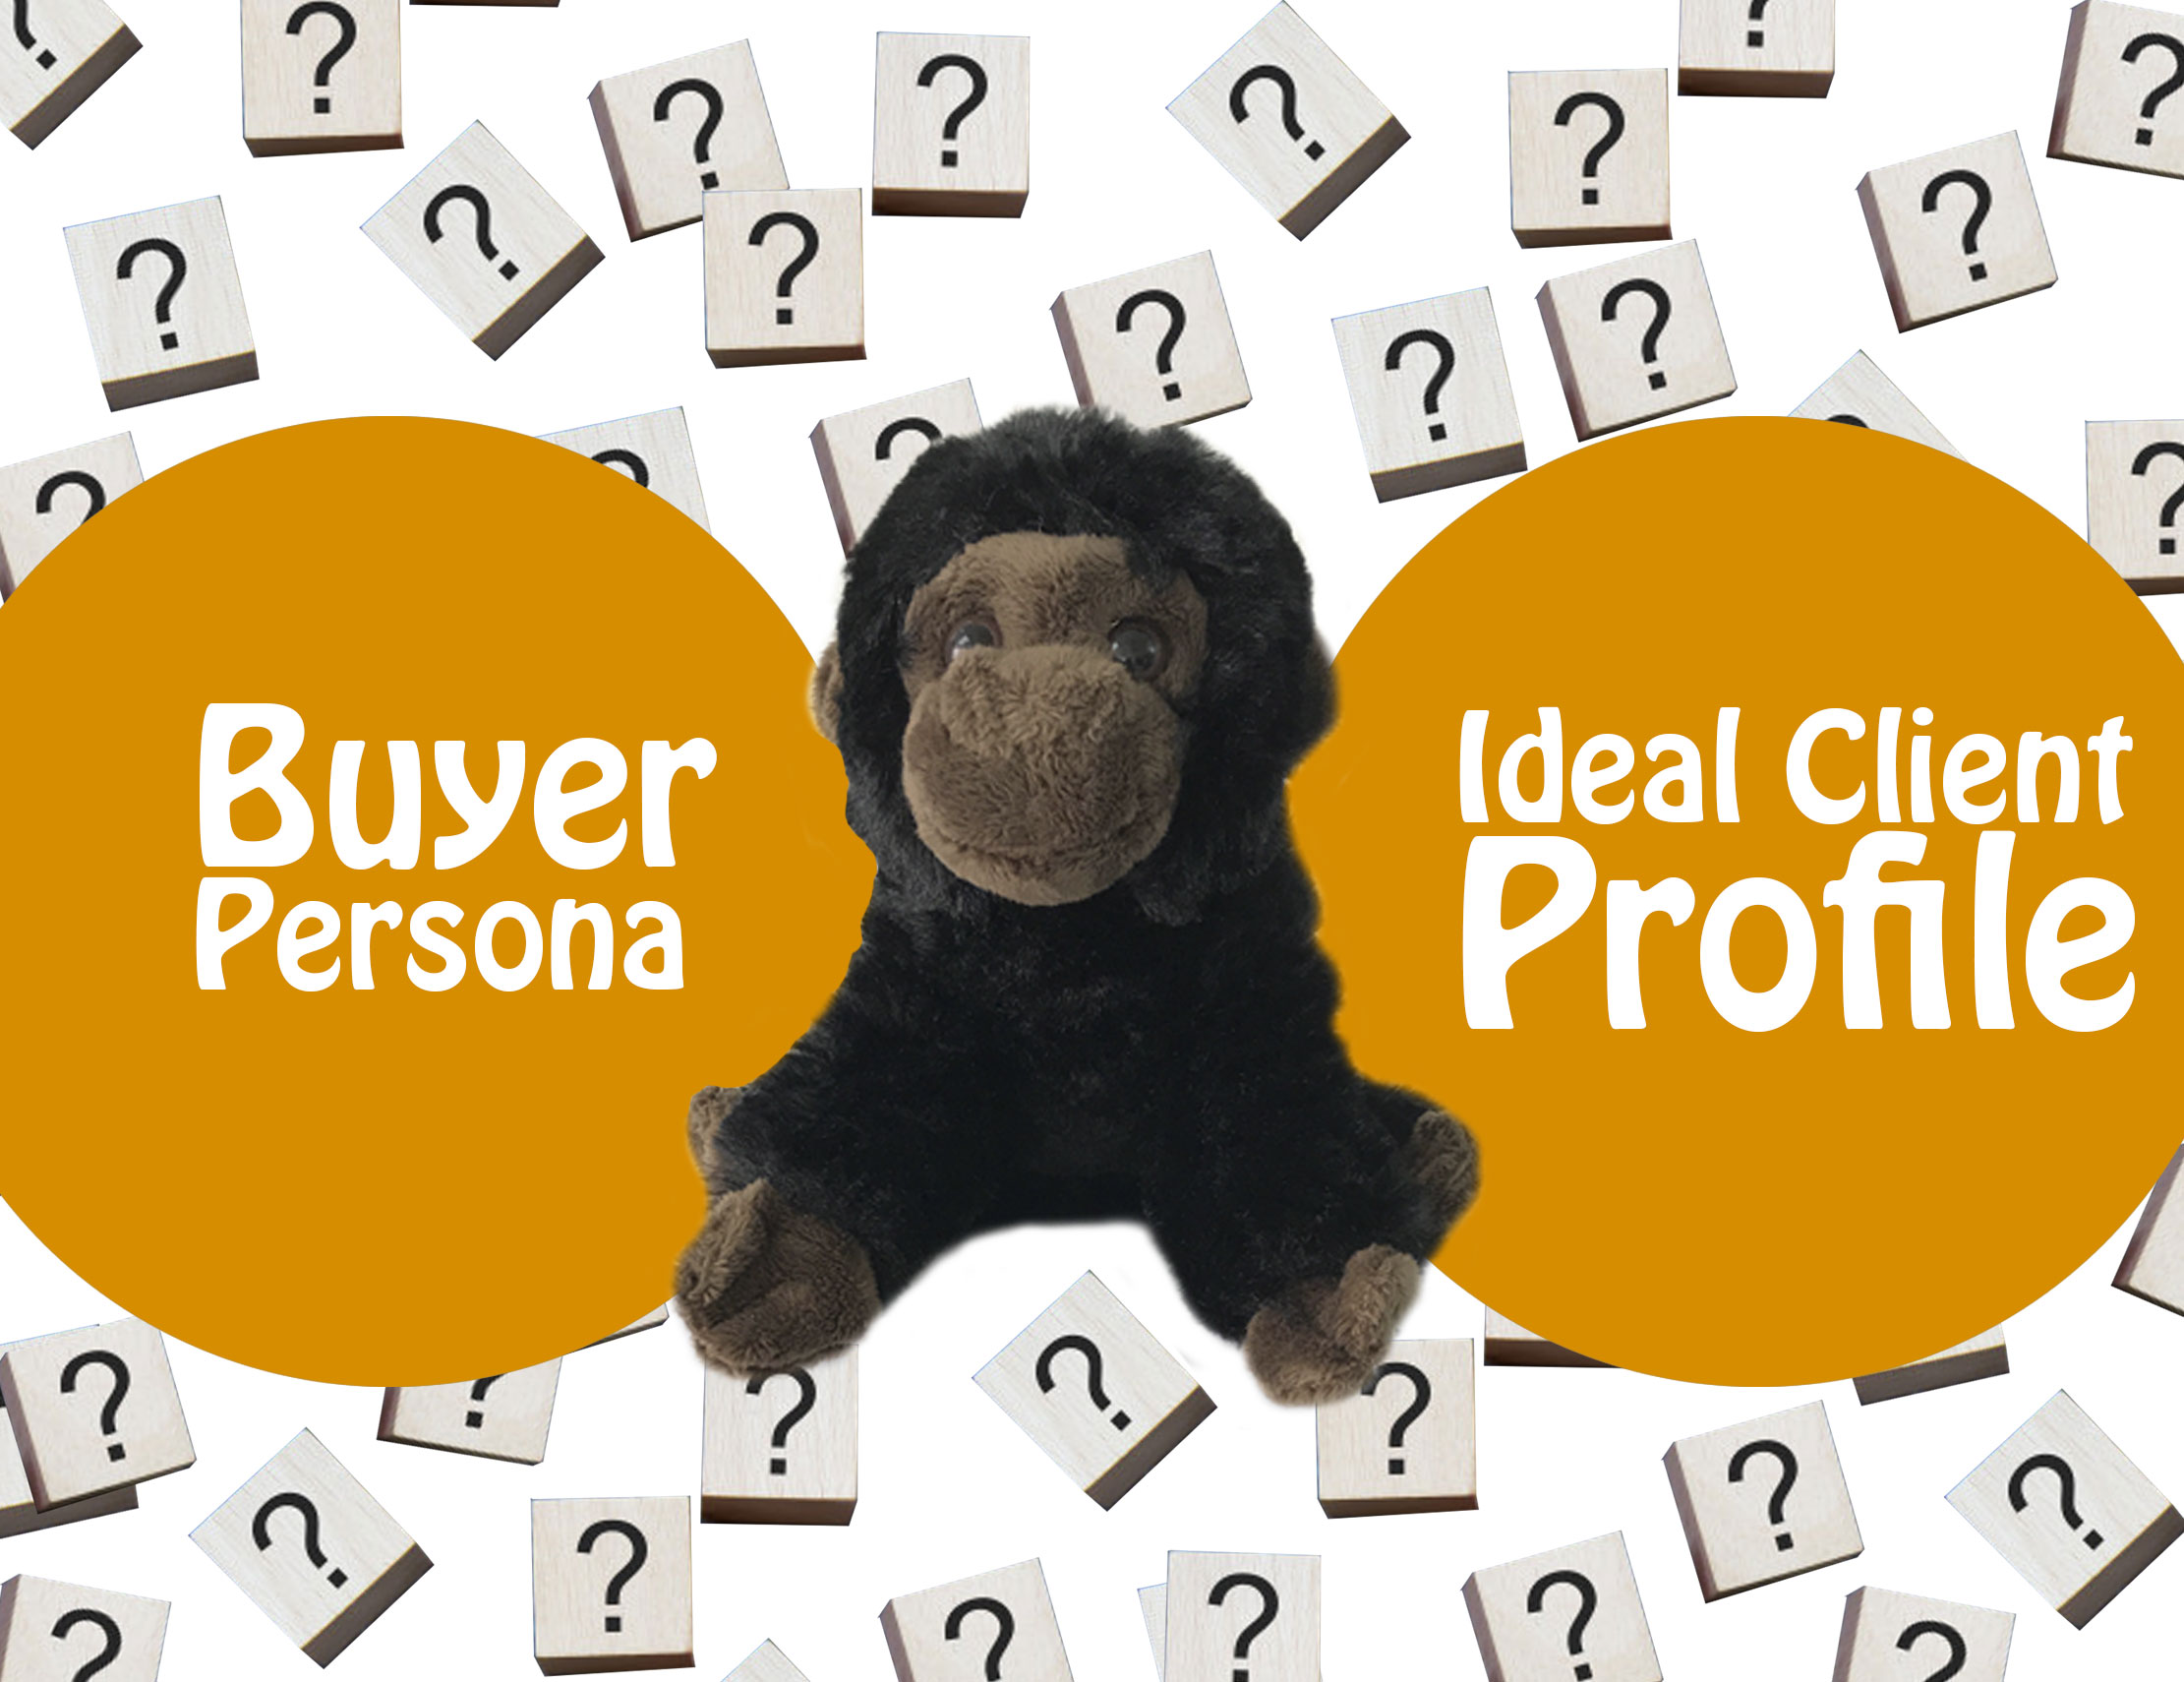 buyer-persona-o-ideal-client-profile